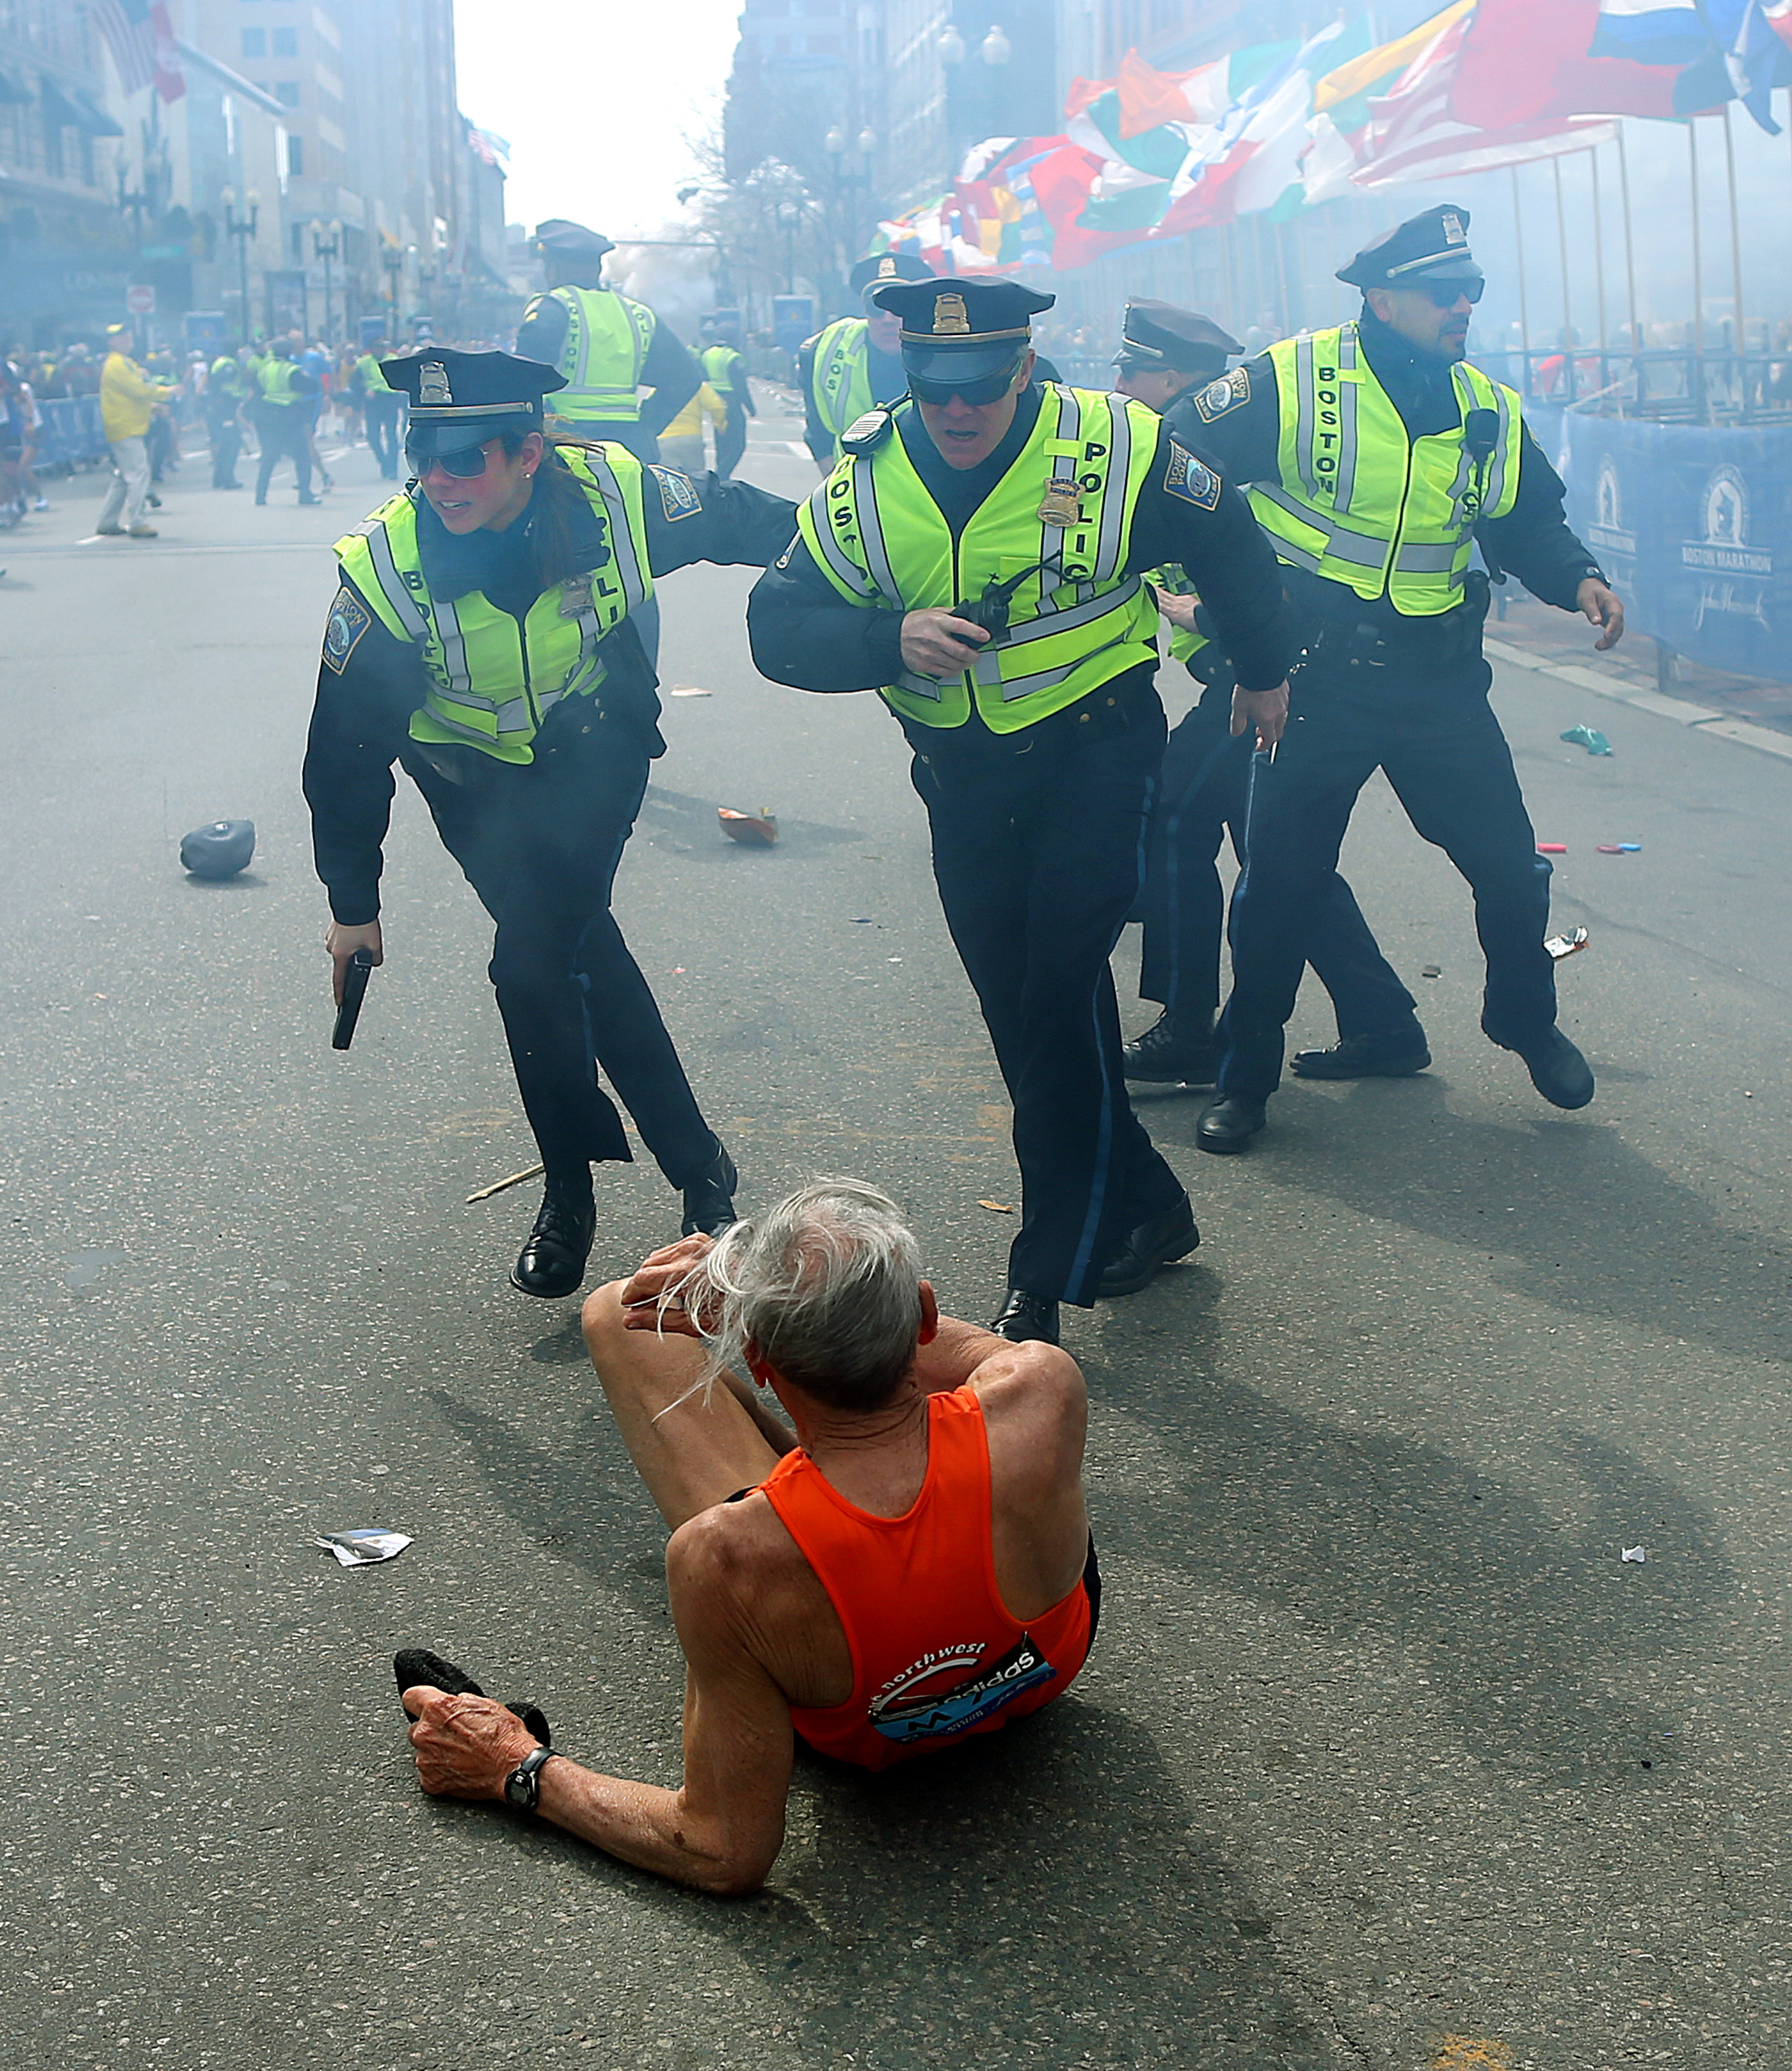 Boston Marathon Bombing: A Primer - WhoWhatWhy